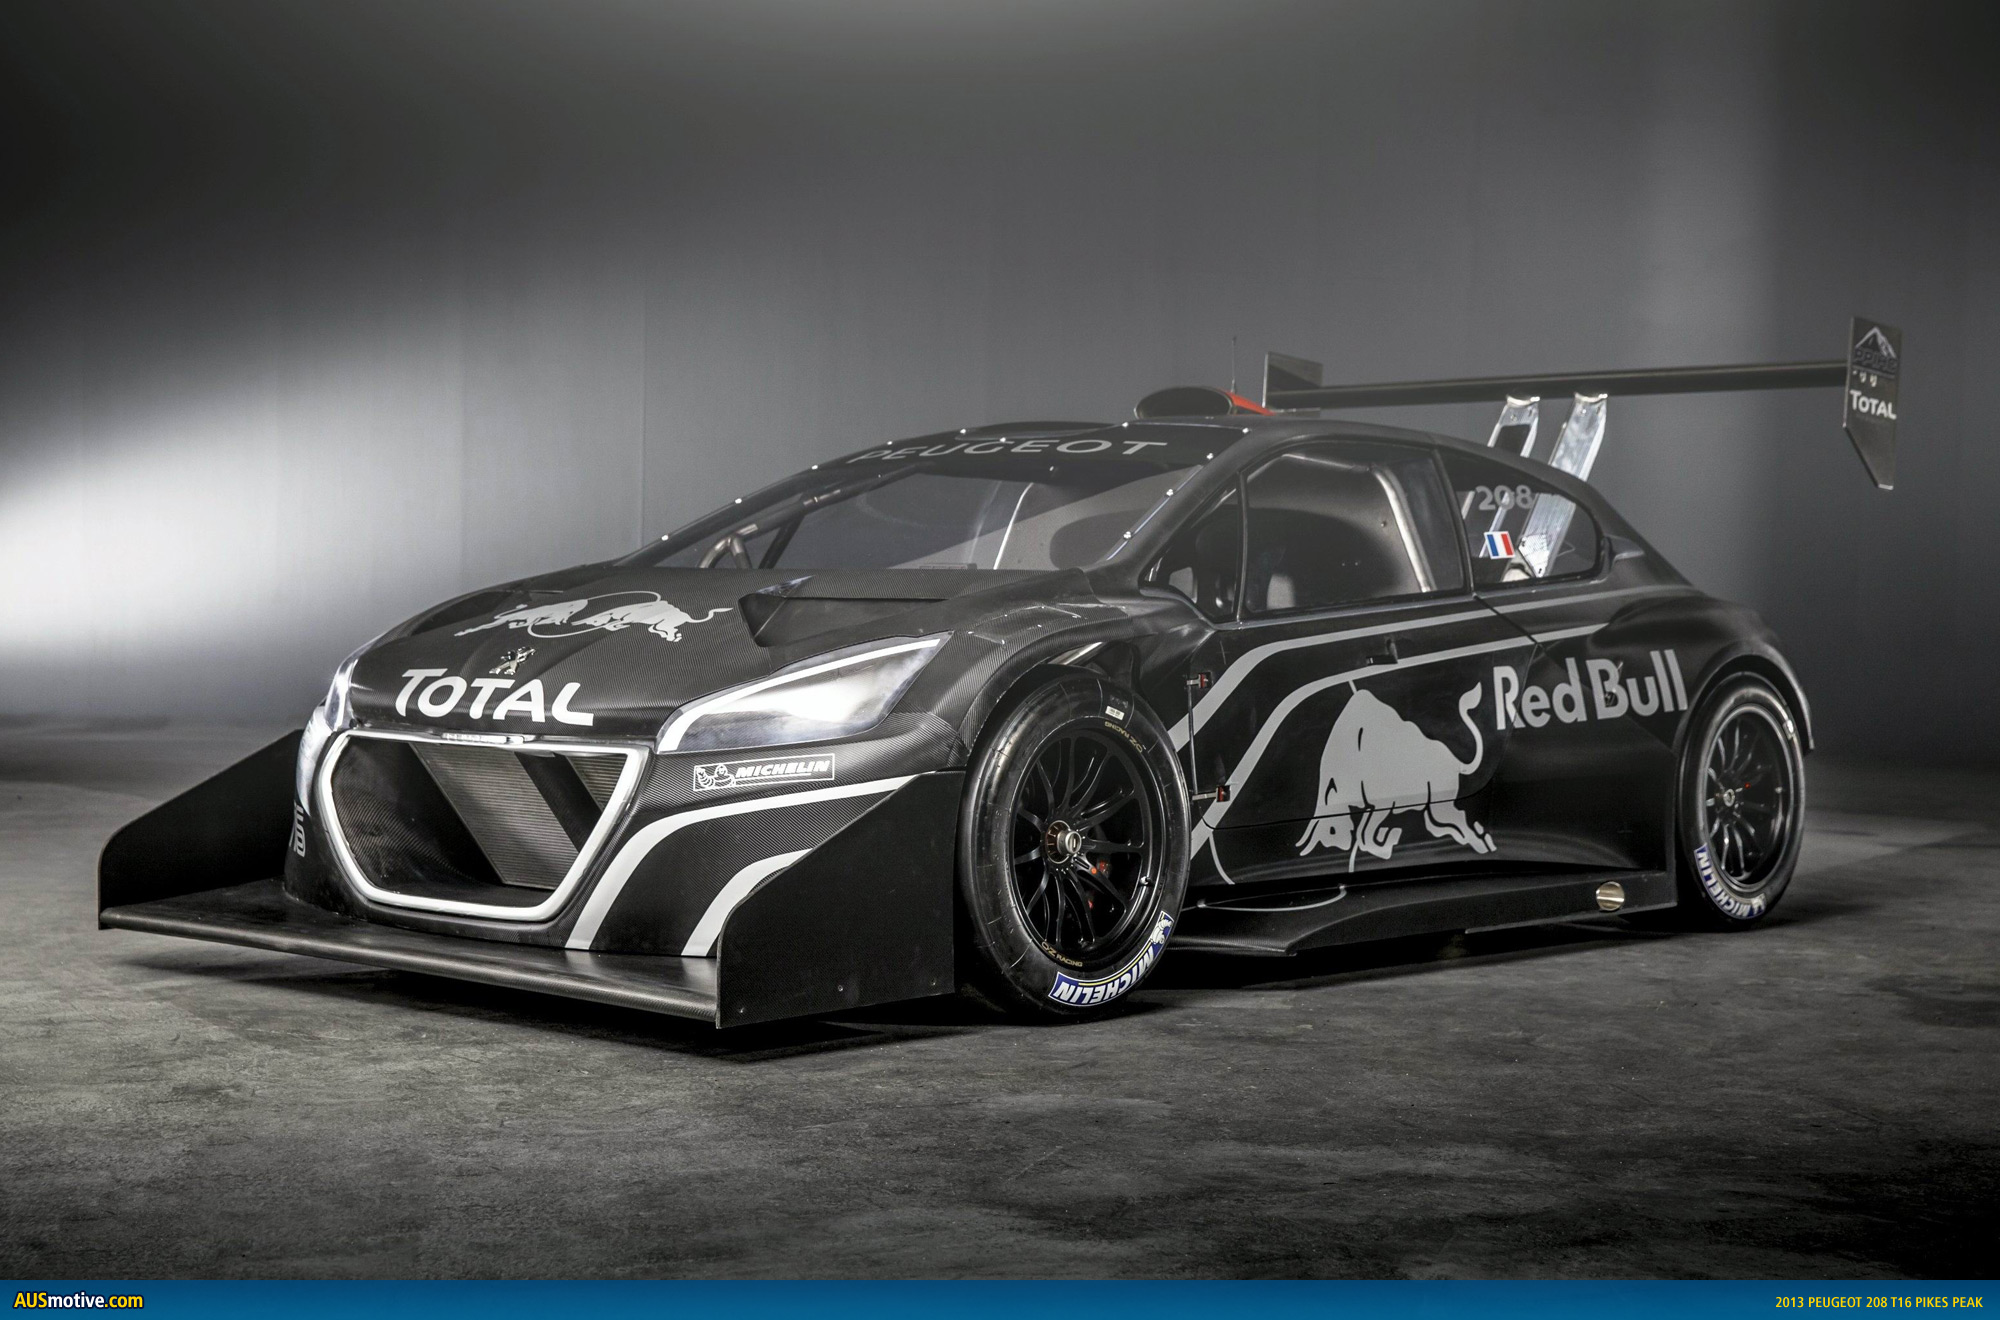 sebastien loeb s peugeot 208 t16 revealed. Black Bedroom Furniture Sets. Home Design Ideas